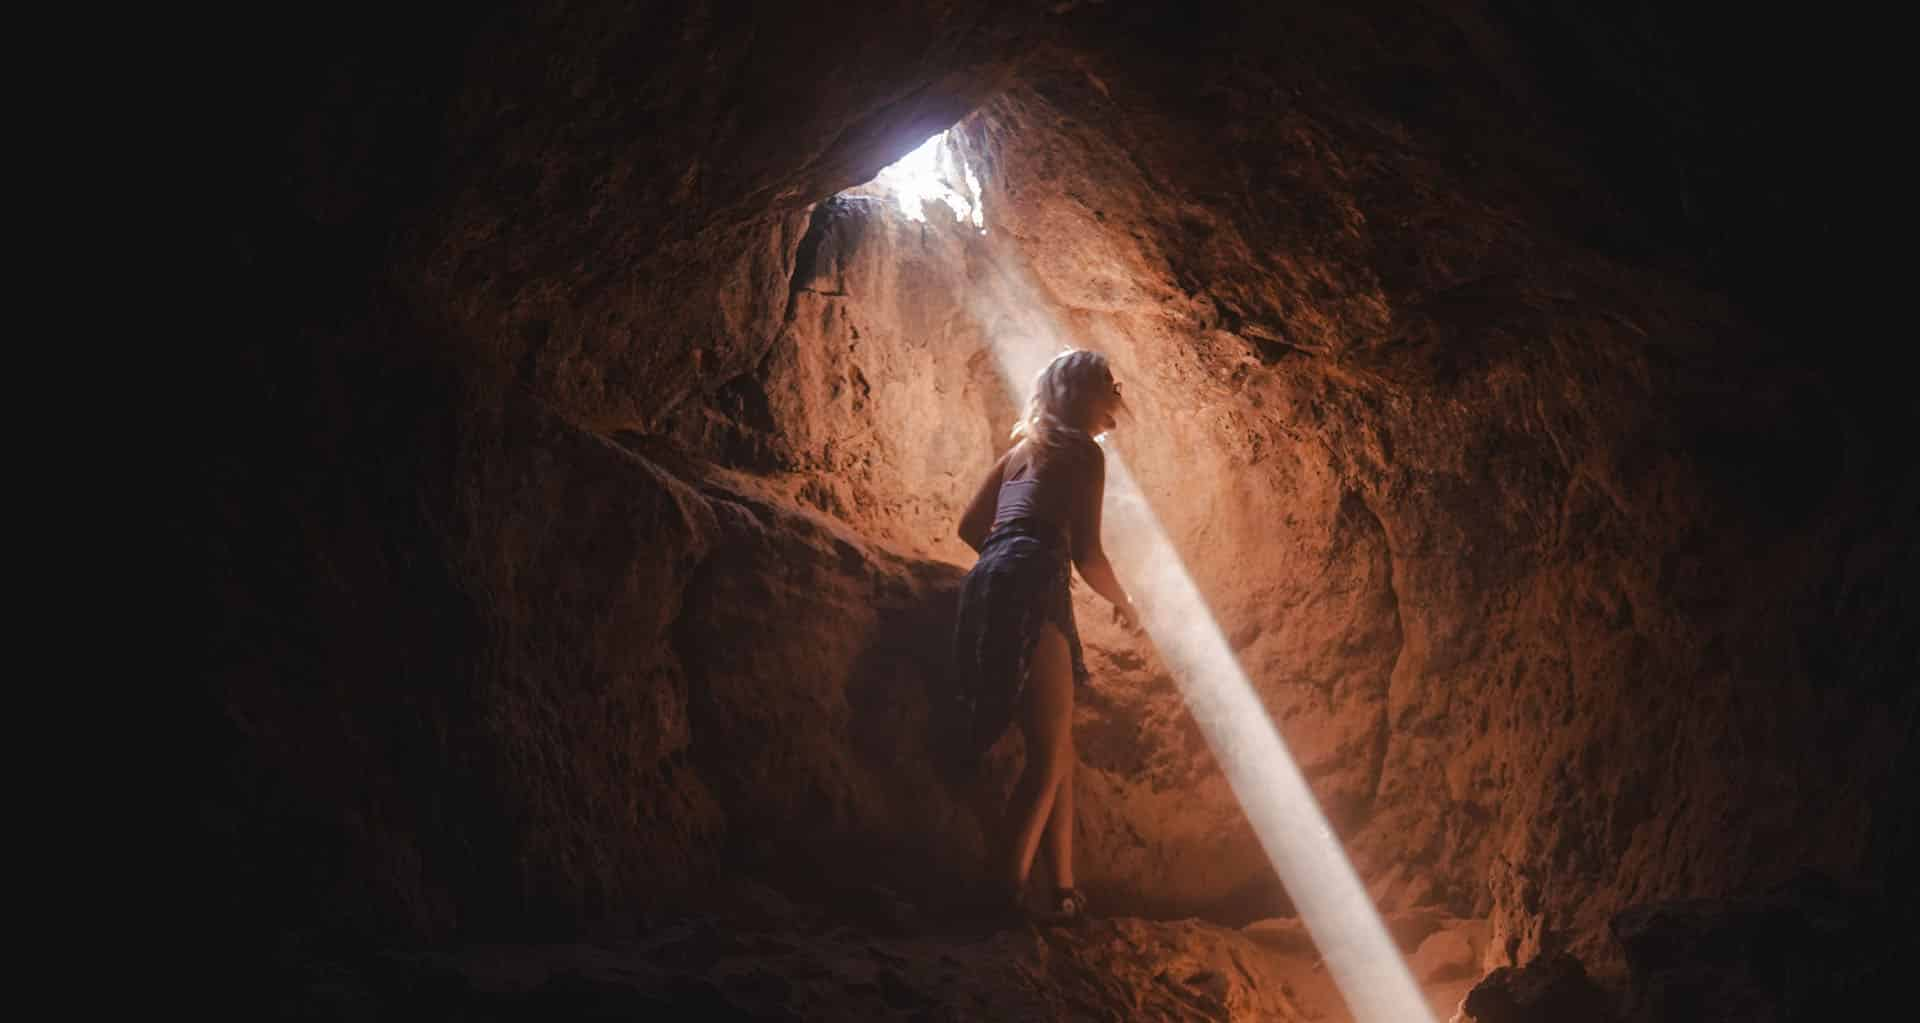 A woman in a cave peers up as light shine from the crack of the cave above.